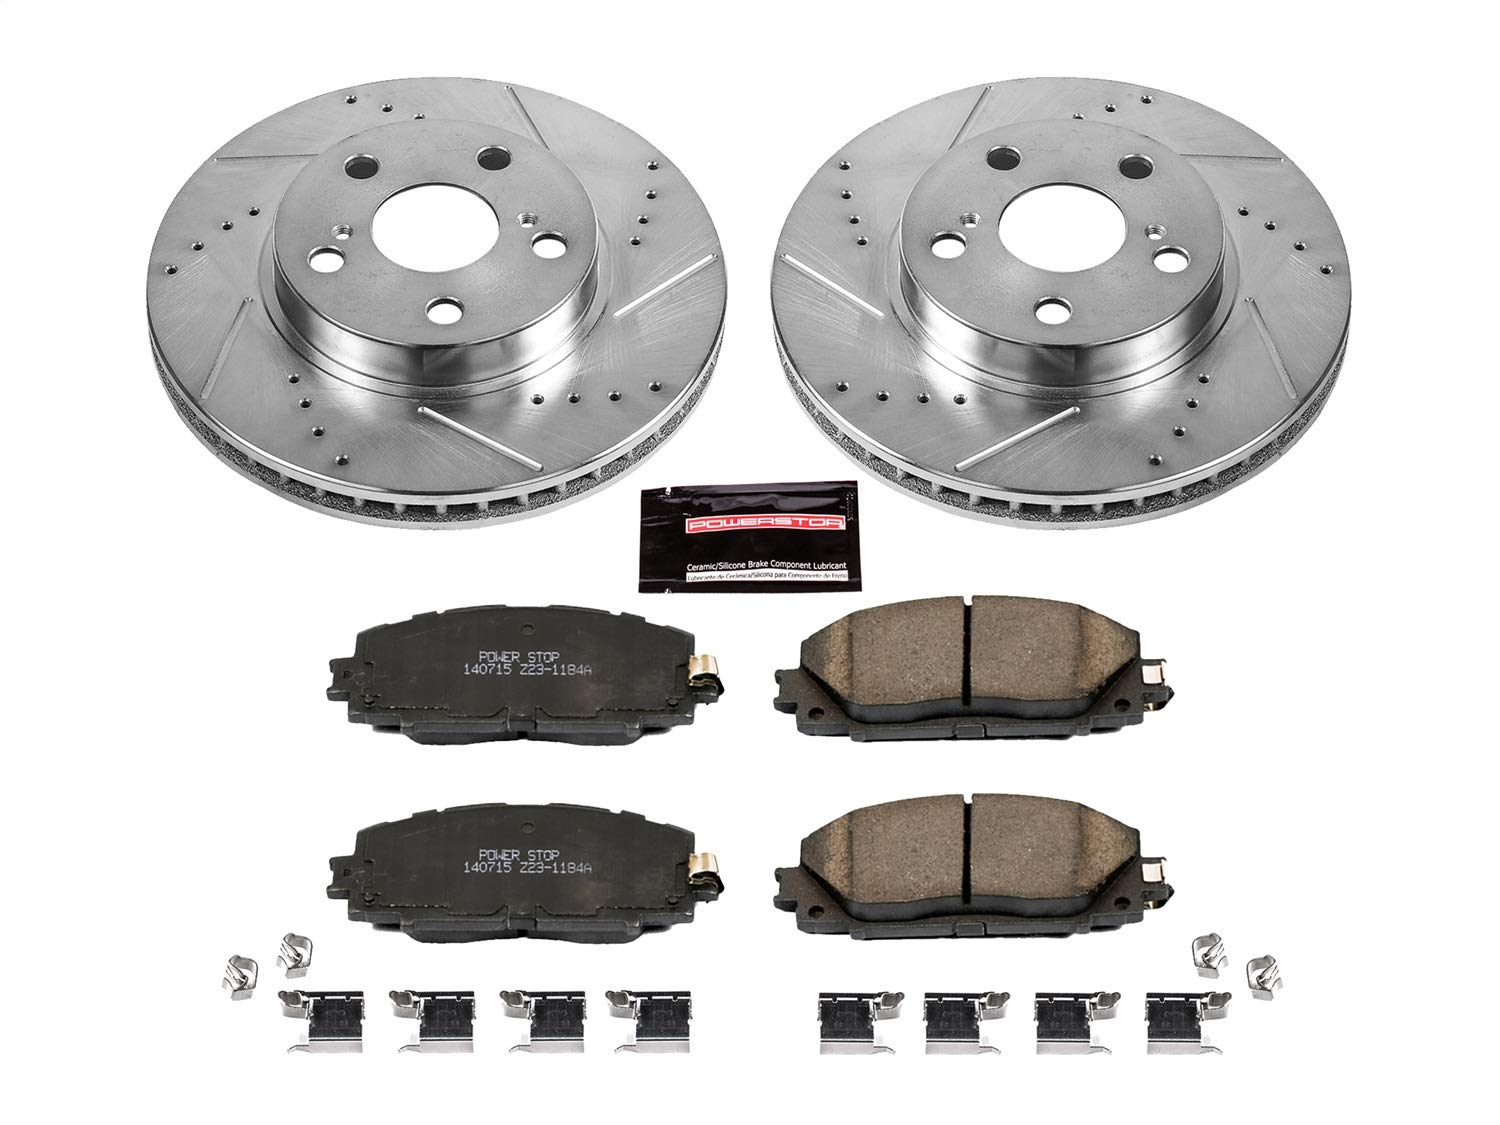 Power Stop K5870 Front Z23 Evolution Brake Kit with Drilled/Slotted Rotors and Ceramic Brake Pads